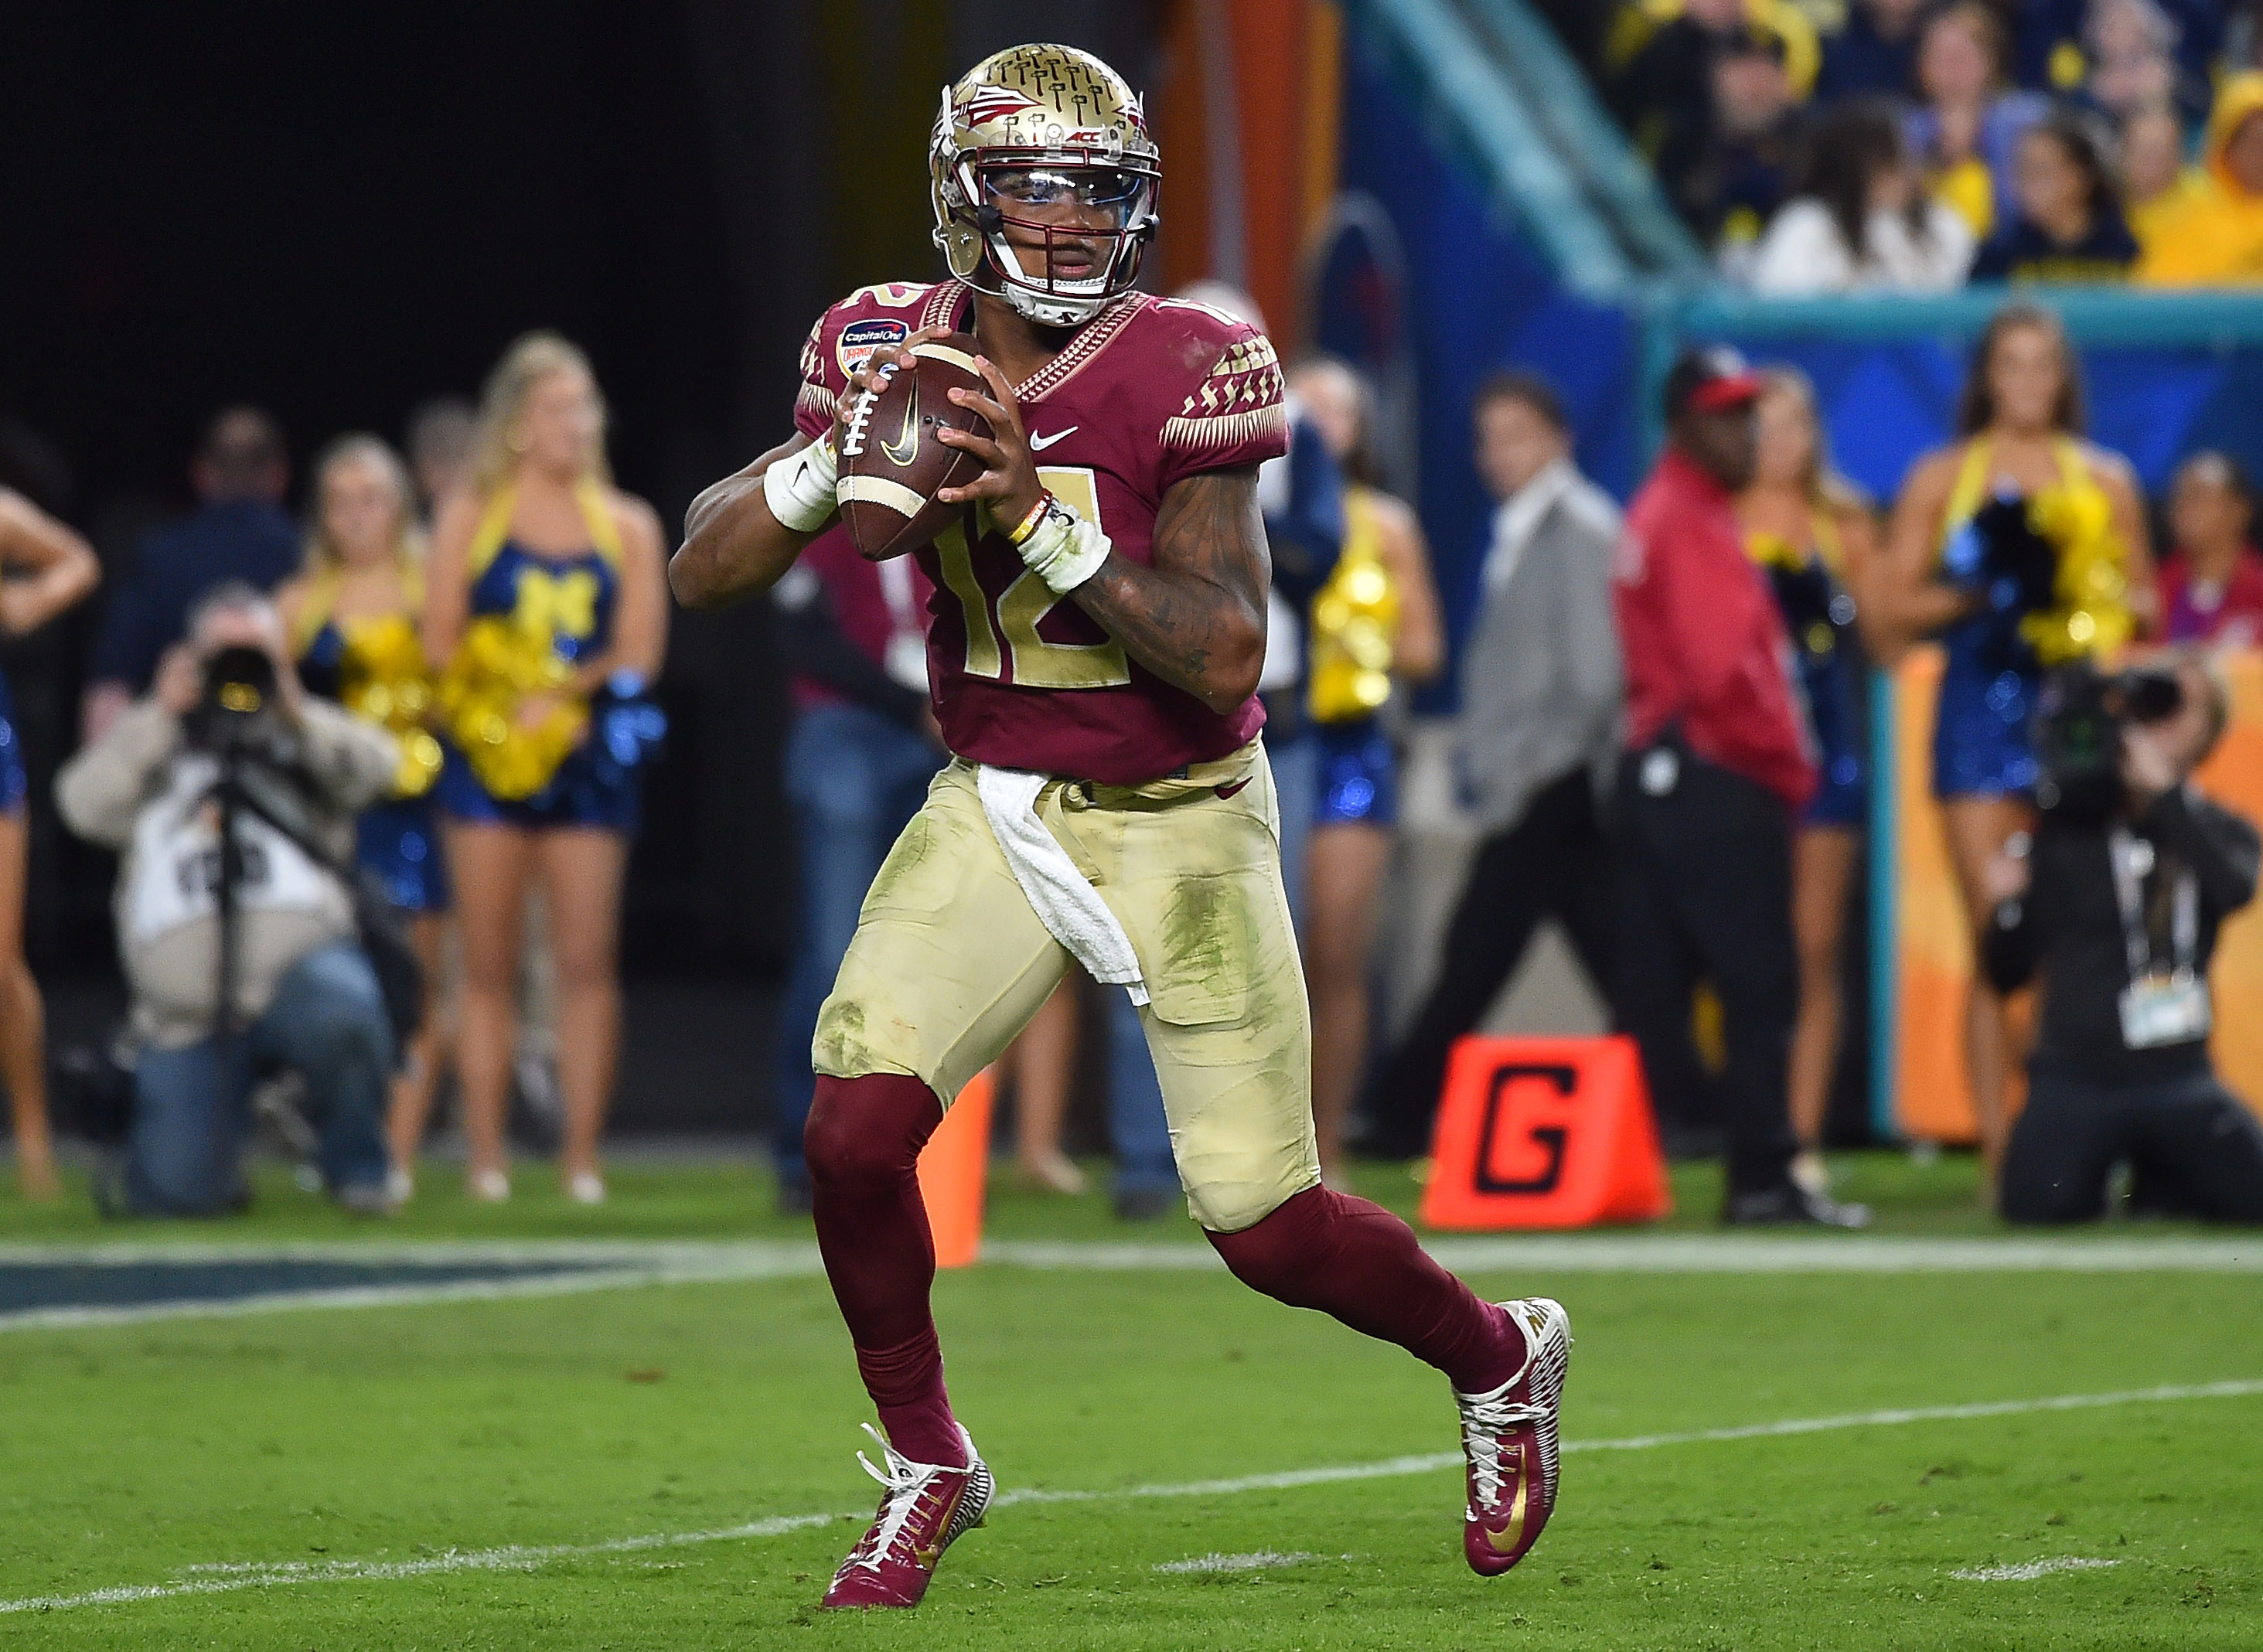 FSU QB Deondre Francois involved in domestic violence incident, police say